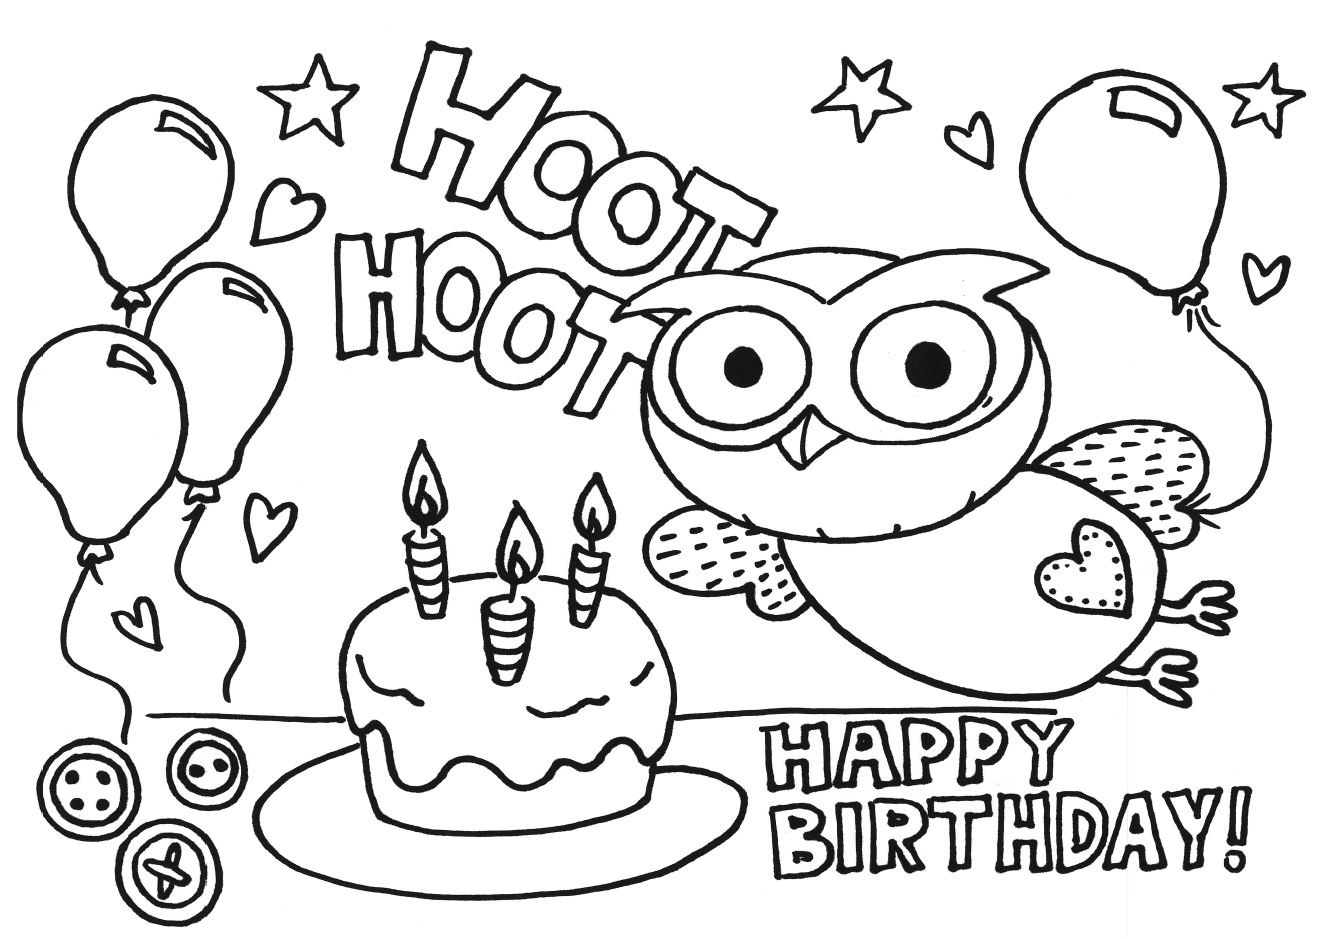 birthday card printable coloring page ; Birthday_Card_Coloring_Page